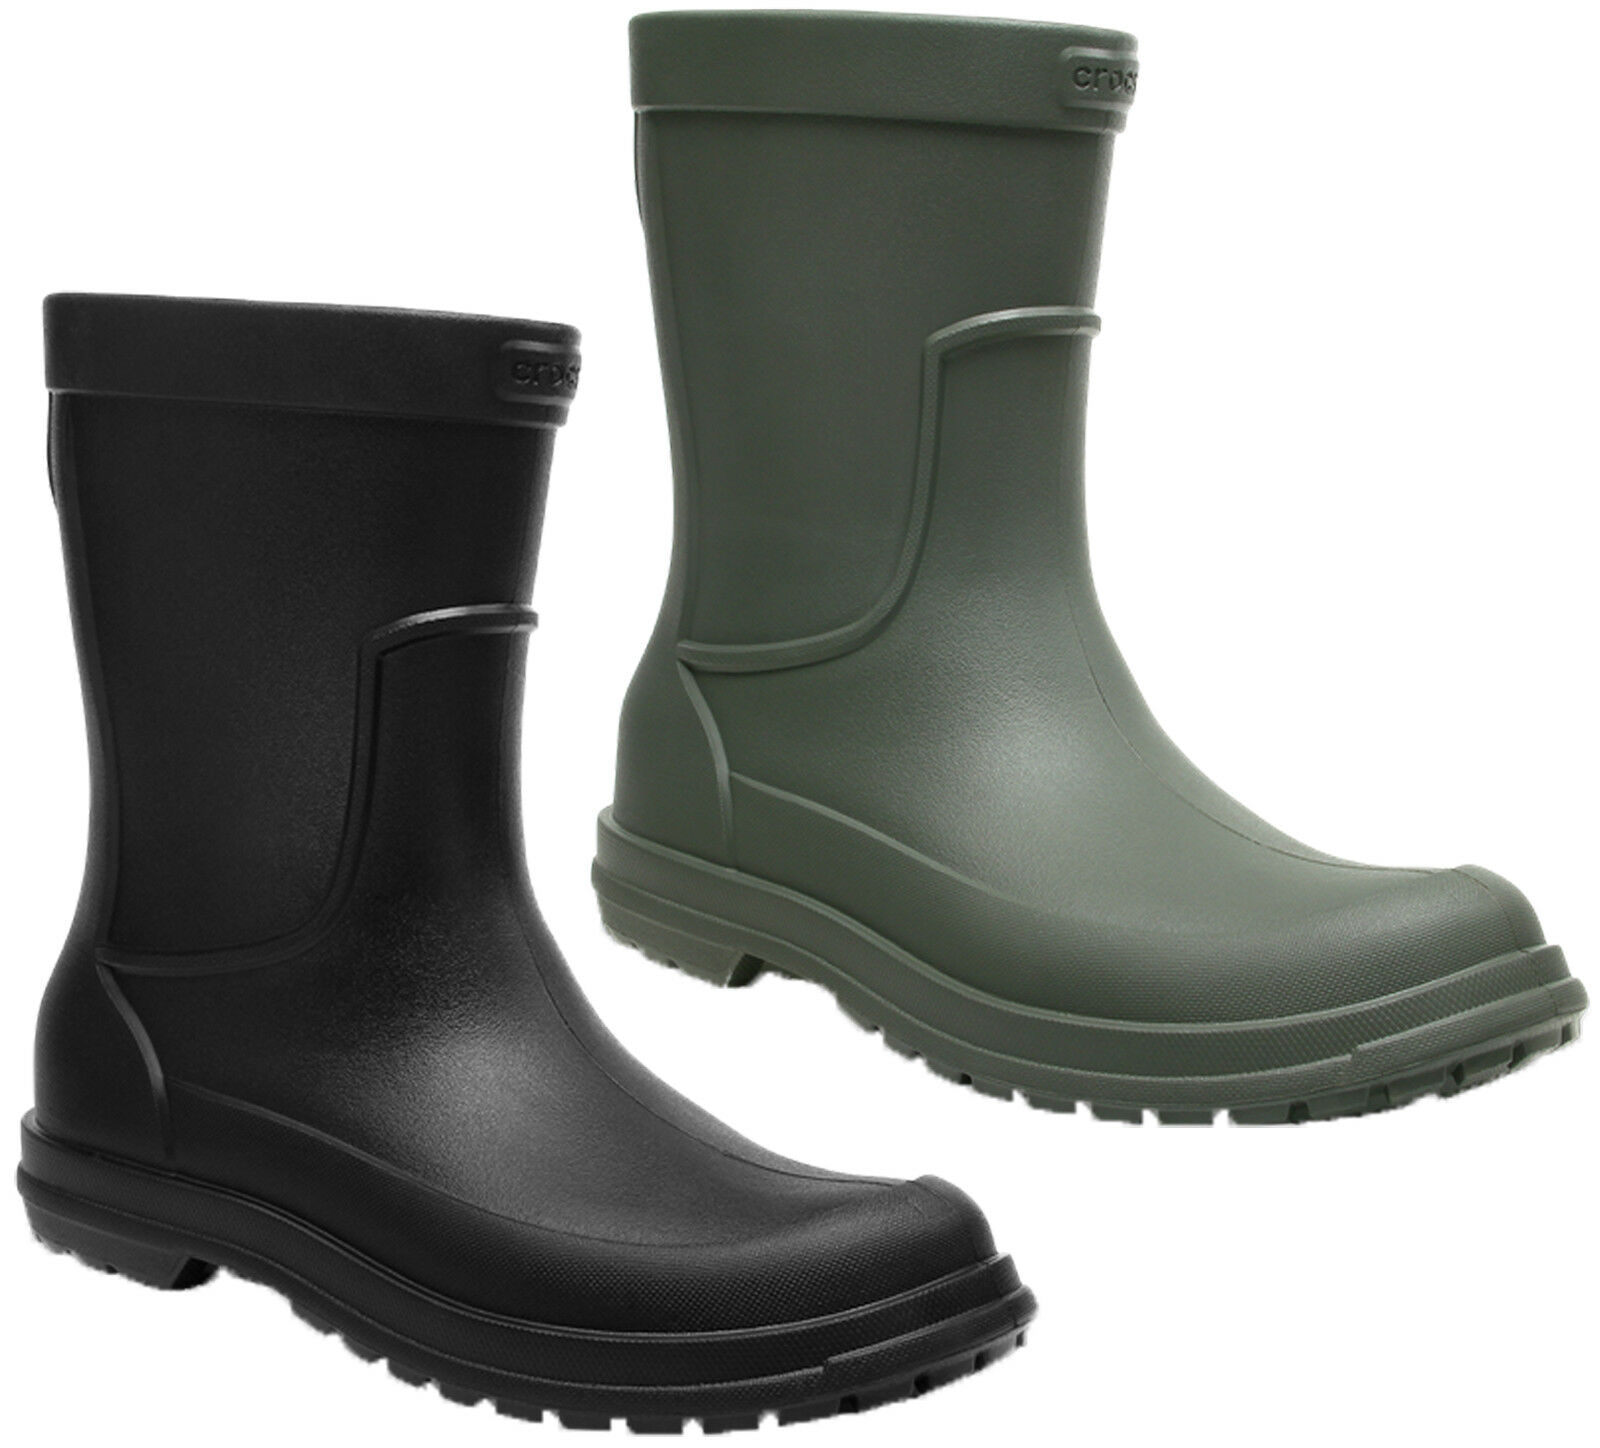 Crocs All Cast Rain Boots Mens Wellingtons Soft Cushioned Wellie Garden UK 6-12